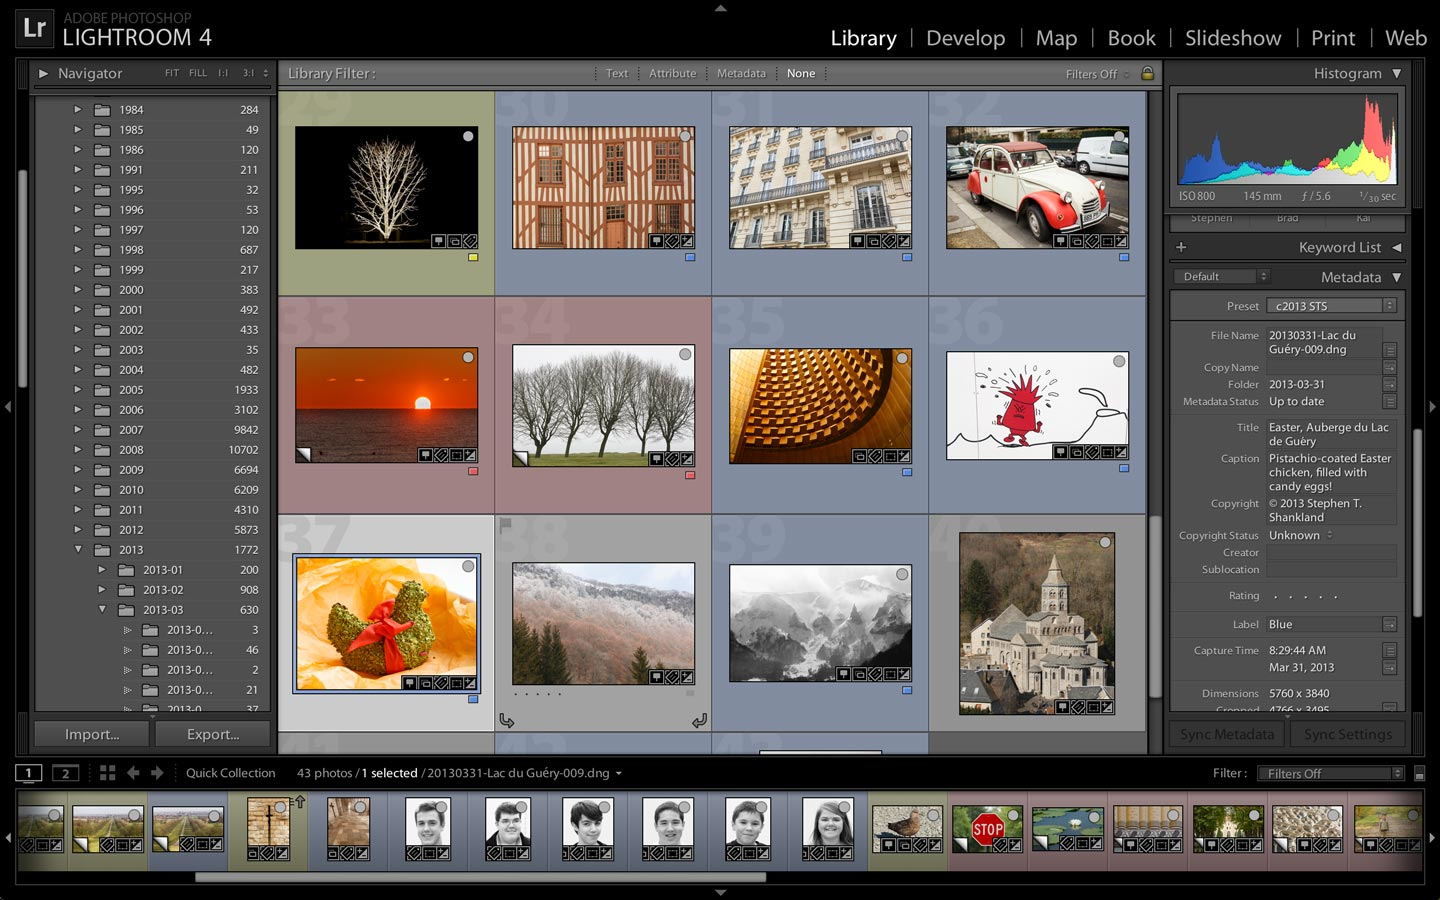 Lightroom offers tools to catalog and edit photos, especially those taken in higher-quality raw photo format.